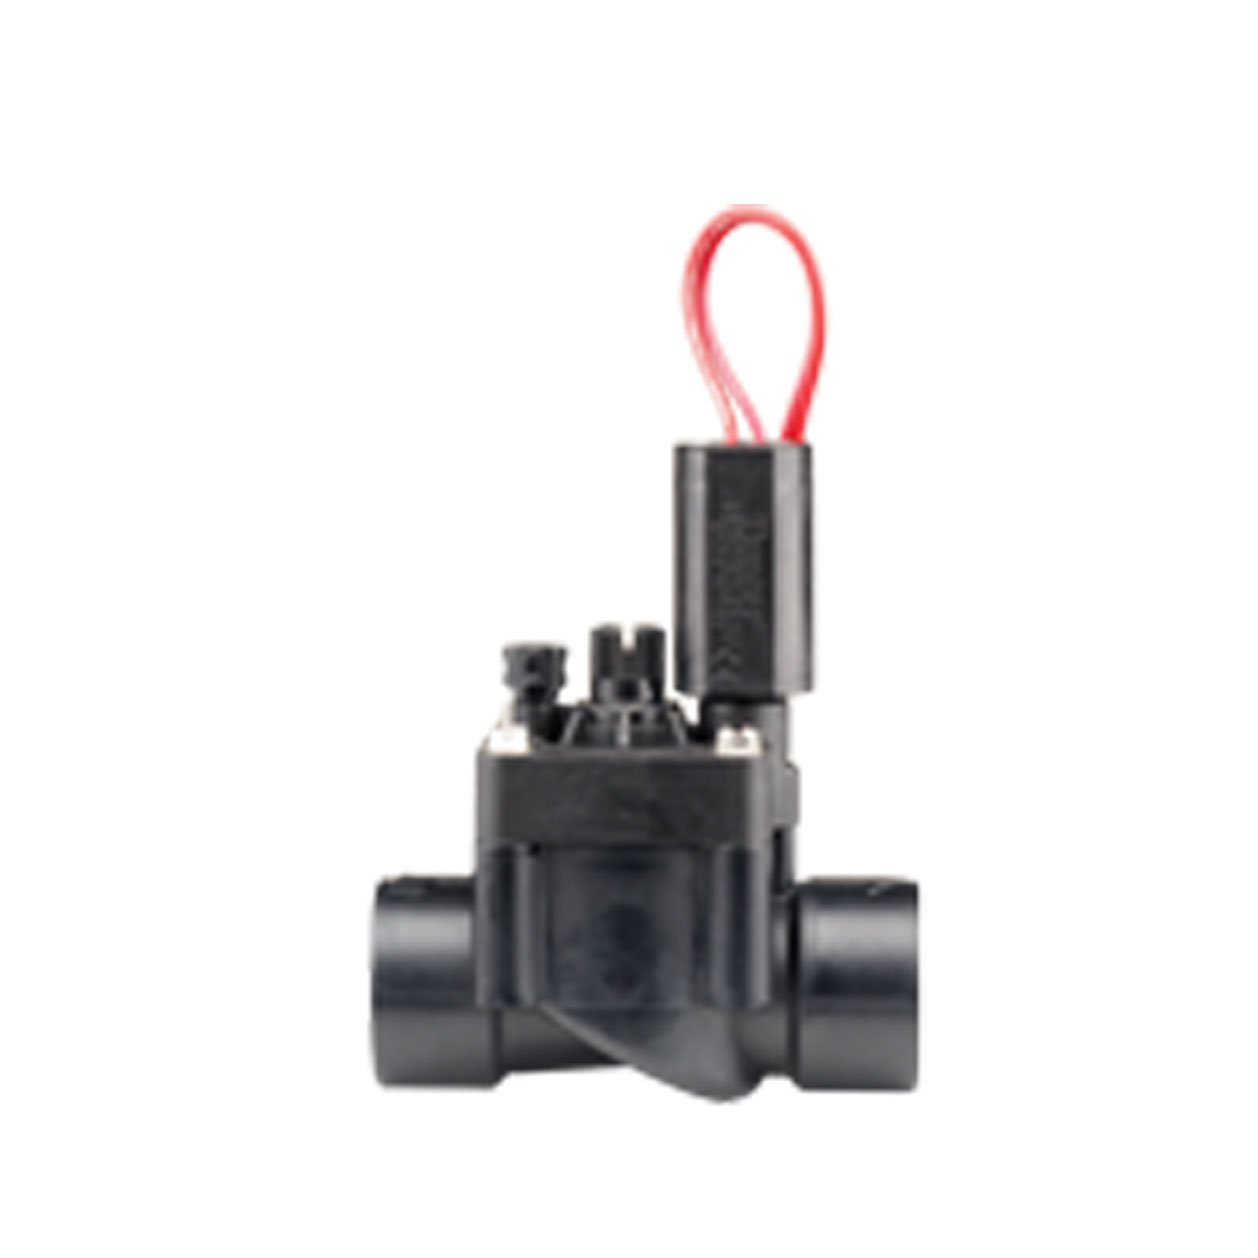 Hunter Sprinkler PGV101MBDC PGV Series 1-Inch Globe Male by Barb Valve with Flow Control and DC Latching Solenoid